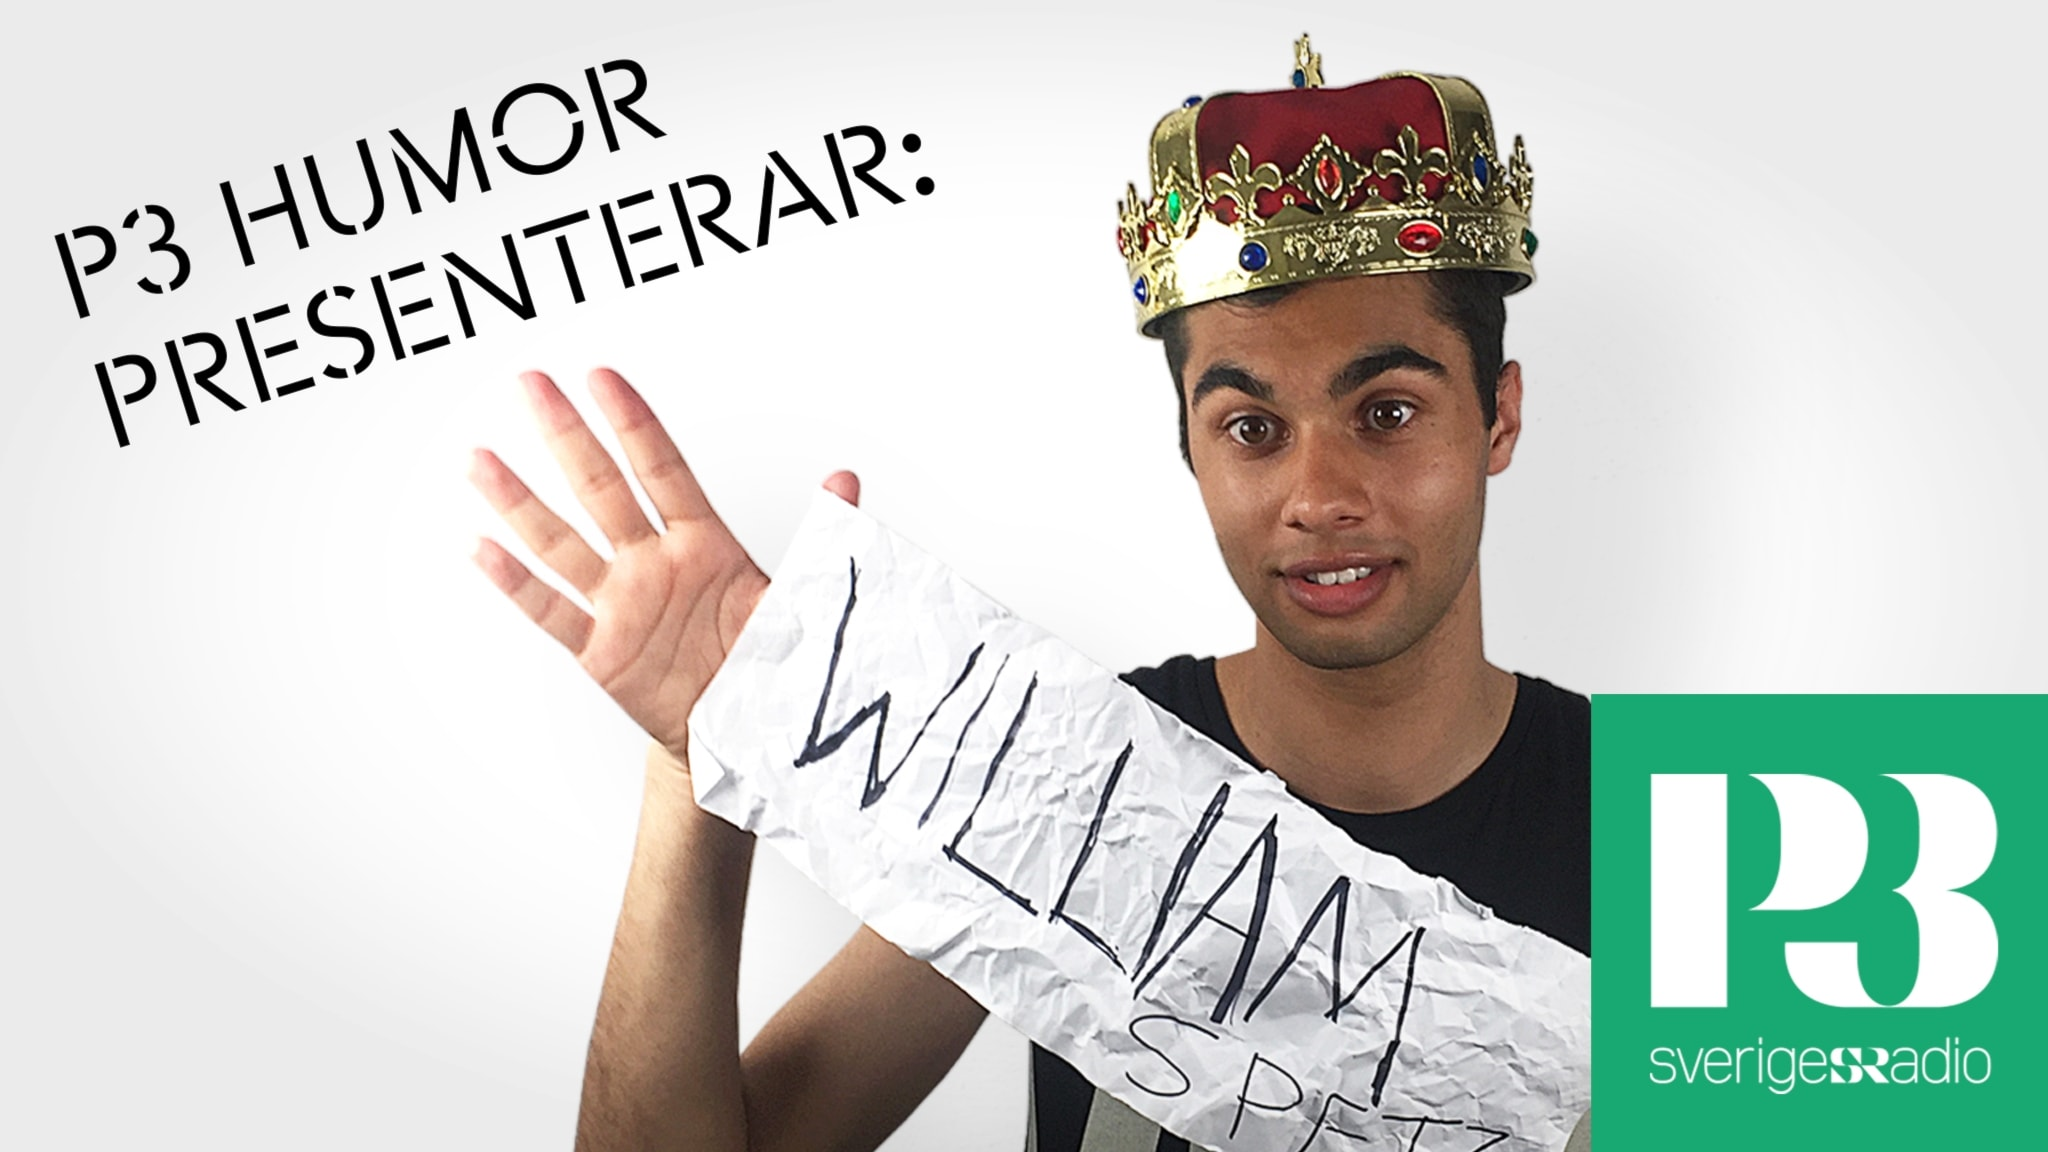 P3 Humor Presenterar: William Spetz